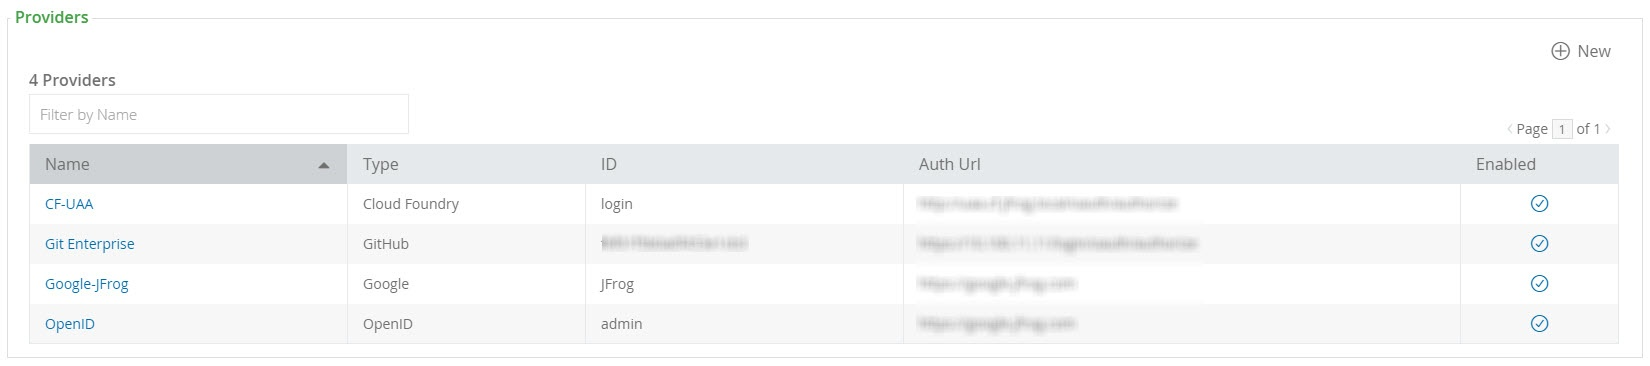 OAuth providers list